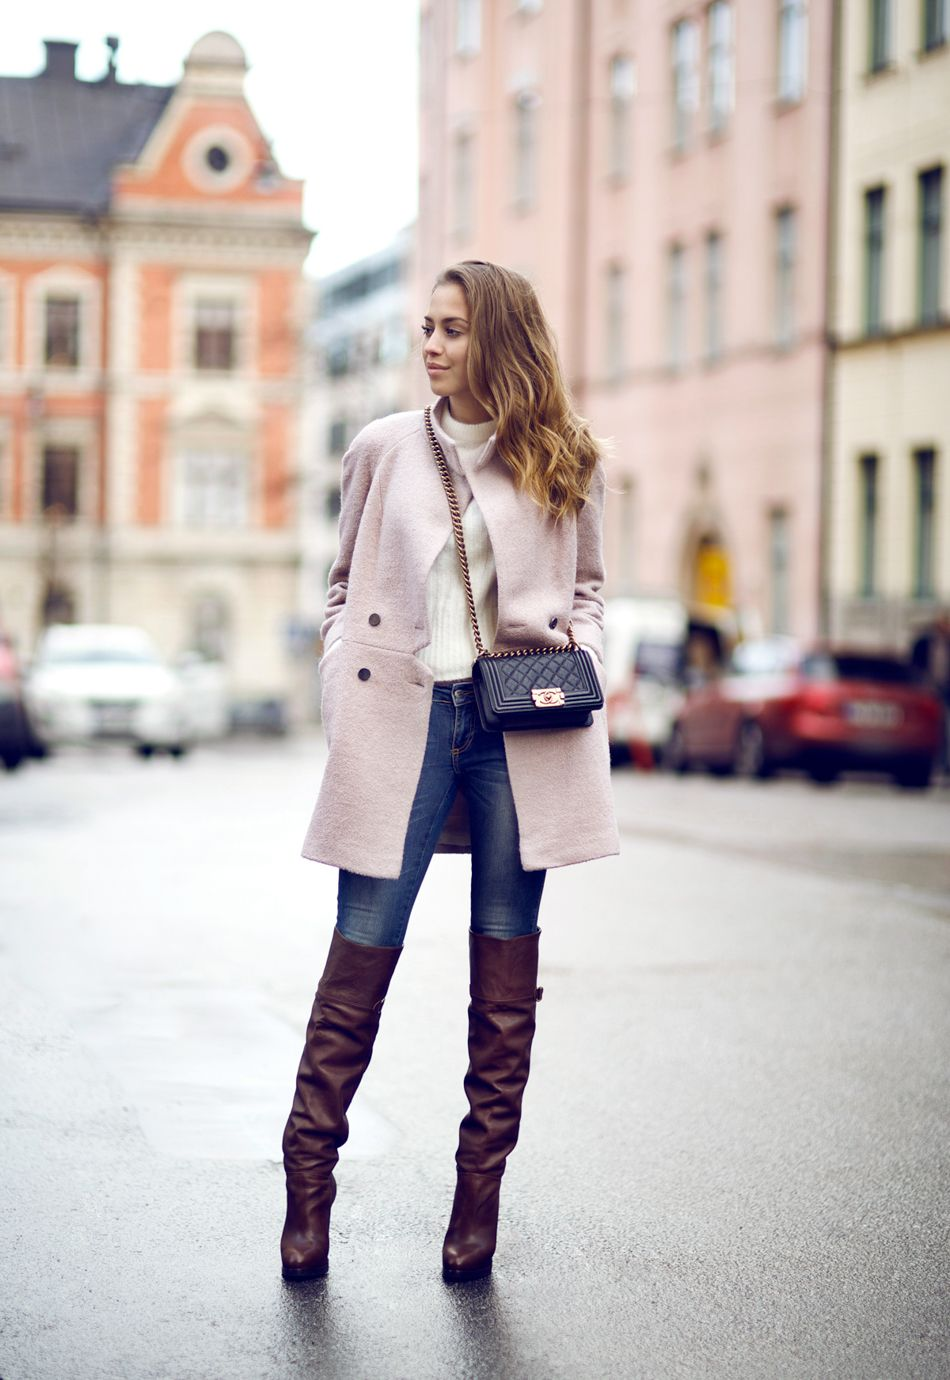 599ab0cfec41 Swedish blogger Kenza Zouiten walks the town in rich brown over-the ...